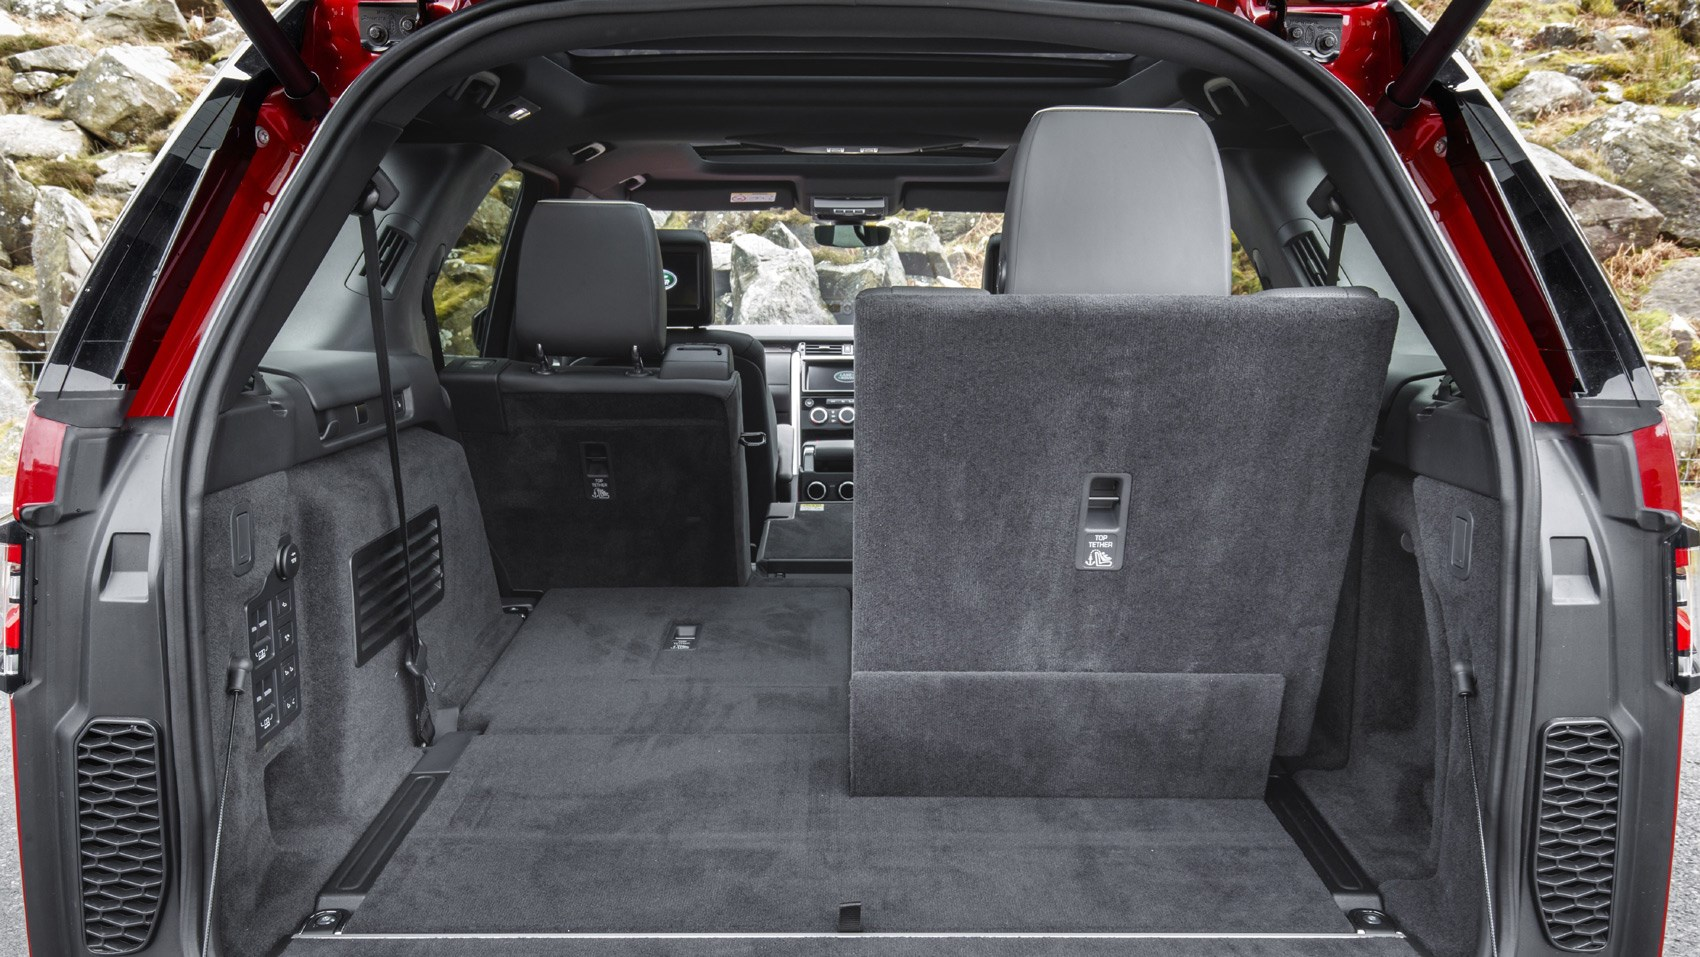 Land Rover Discovery sD4 boot seats down